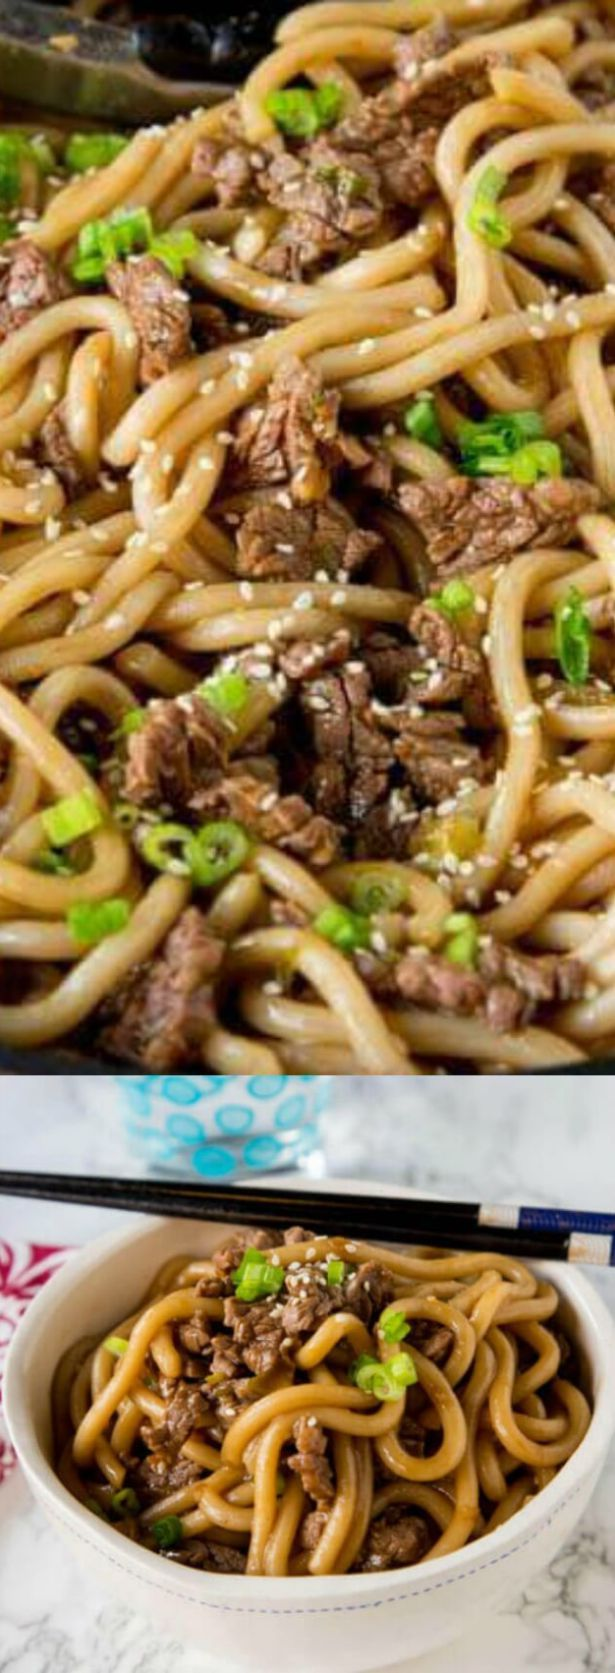 These Garlic Beef Noodle Bowls are a flavorful and delicious dinner for the whole family! They come together in 15 minutes making them perfect for busy nights!